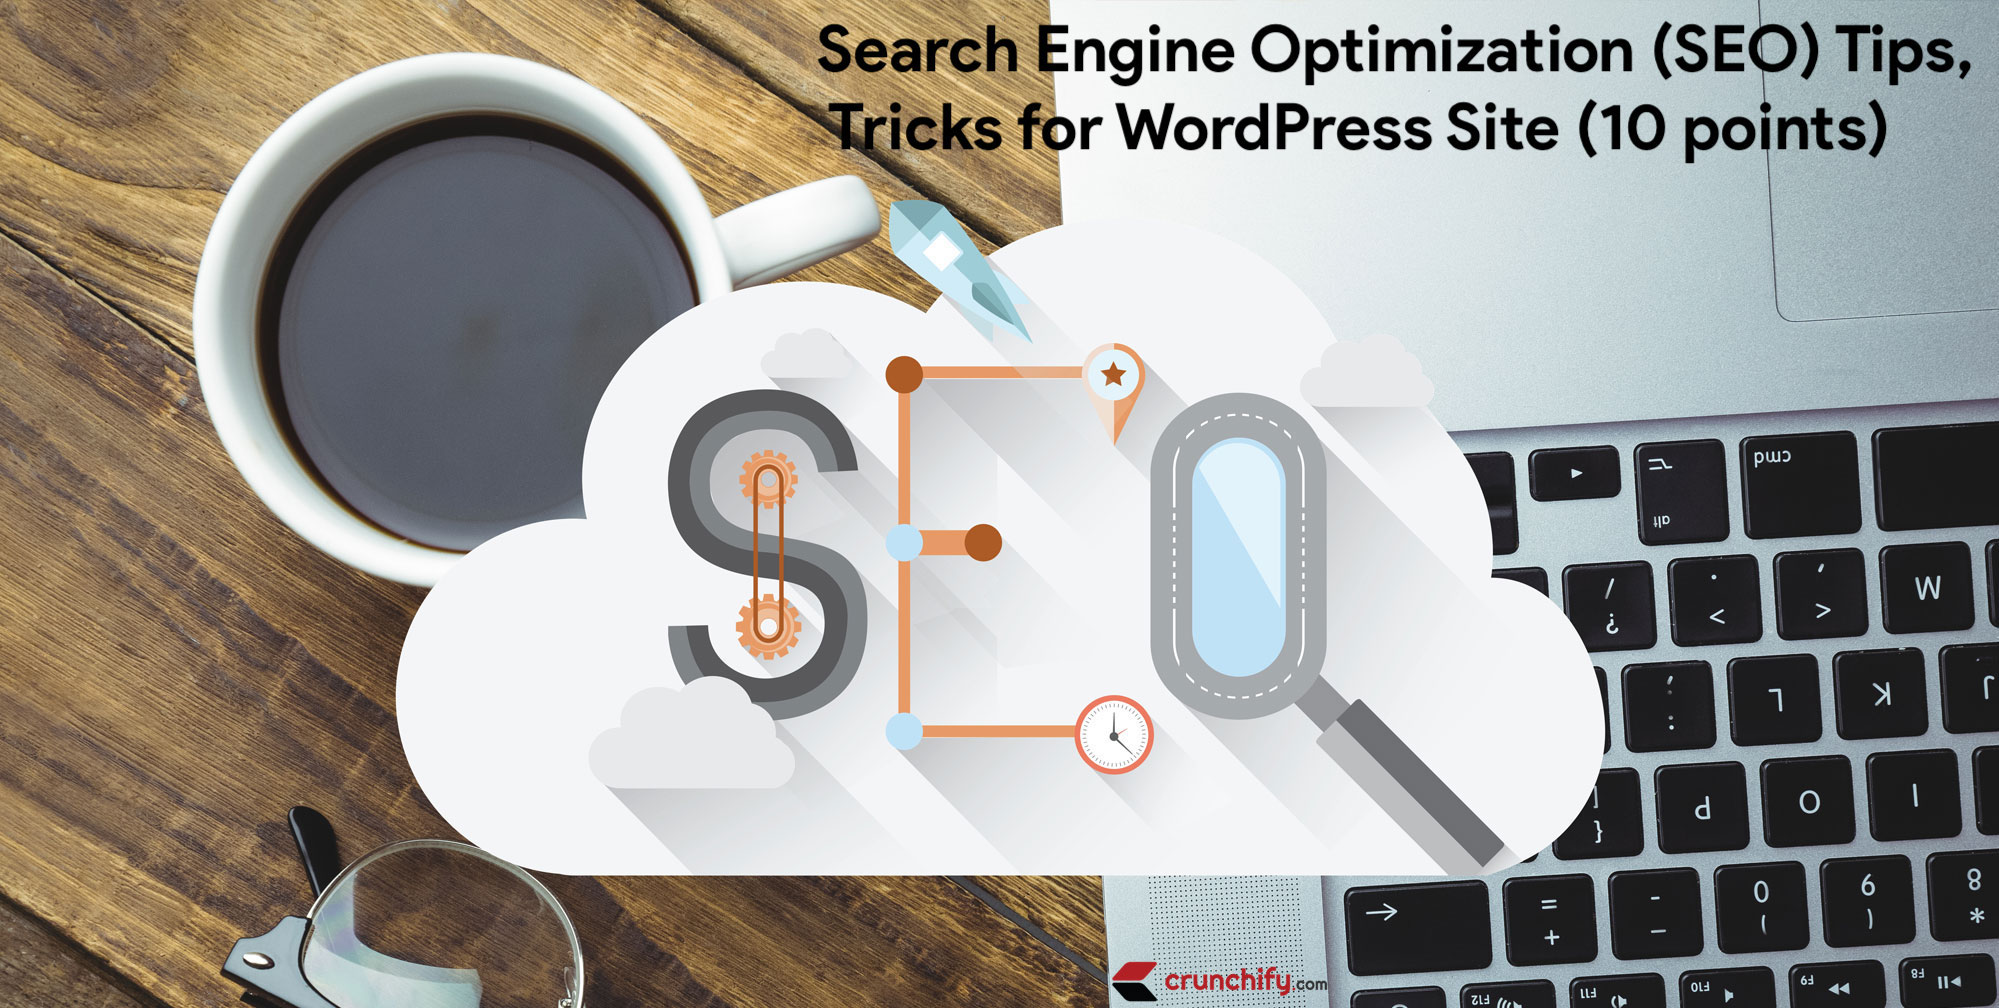 Search Engine Optimization (SEO) Tips and Tricks for WordPress Site